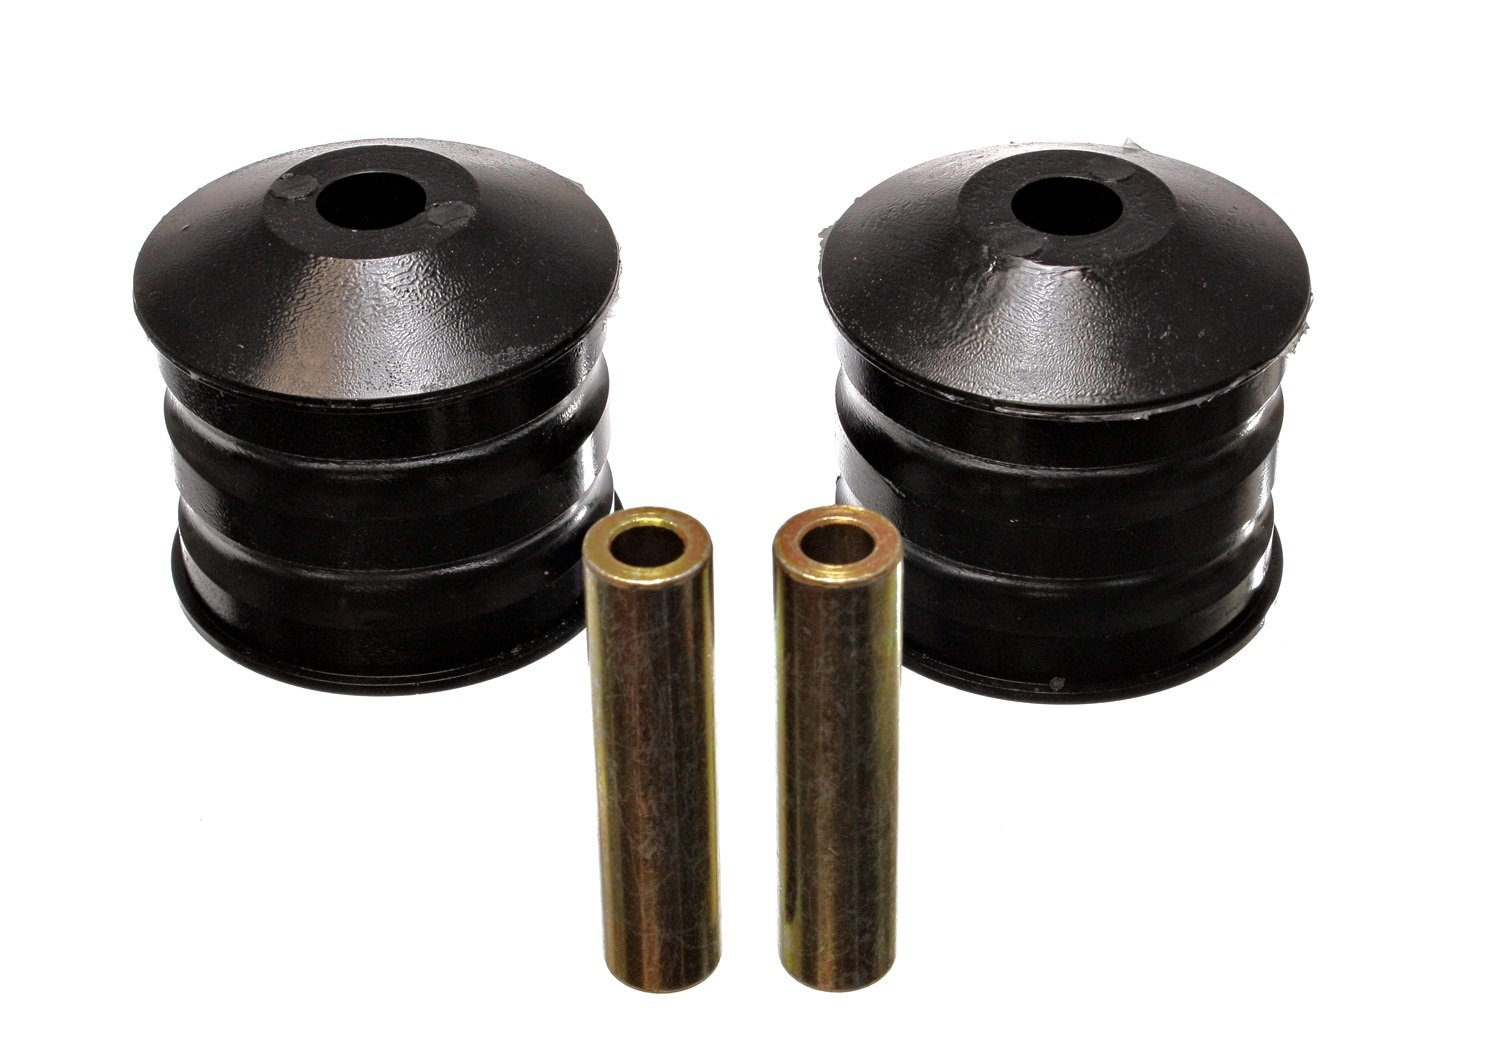 Energy Suspension 7.1114G Motor Mount Replacements for Maxima